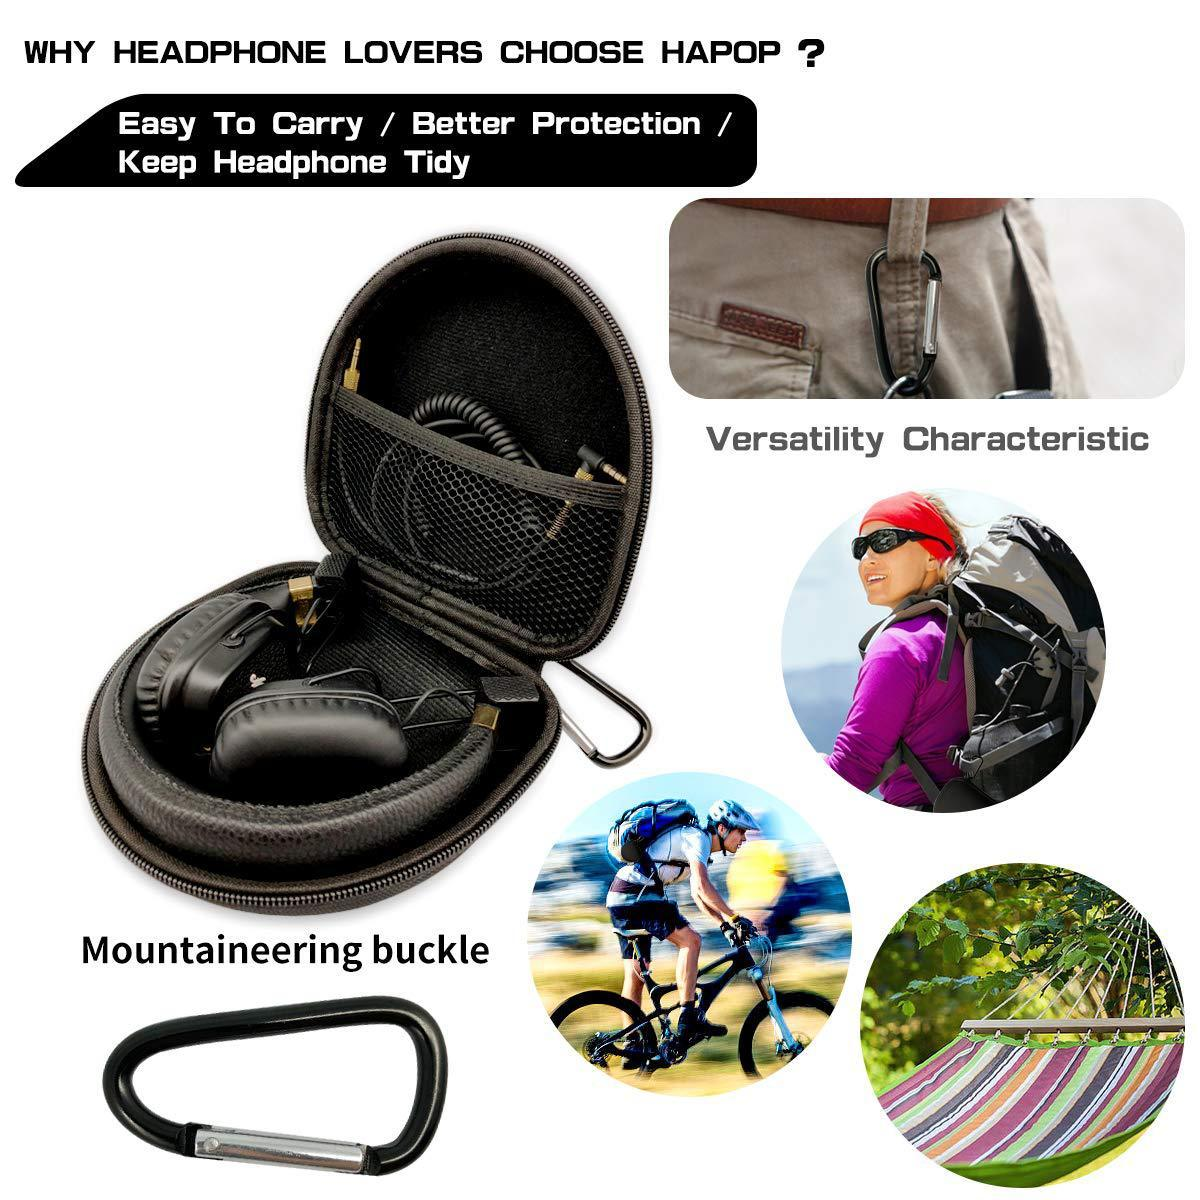 Easy Carry Major III Bluetooth Earphone For Marshall Backpacks Bag Wireless Headphone Hifi Earbuds With Protective Case enlarge